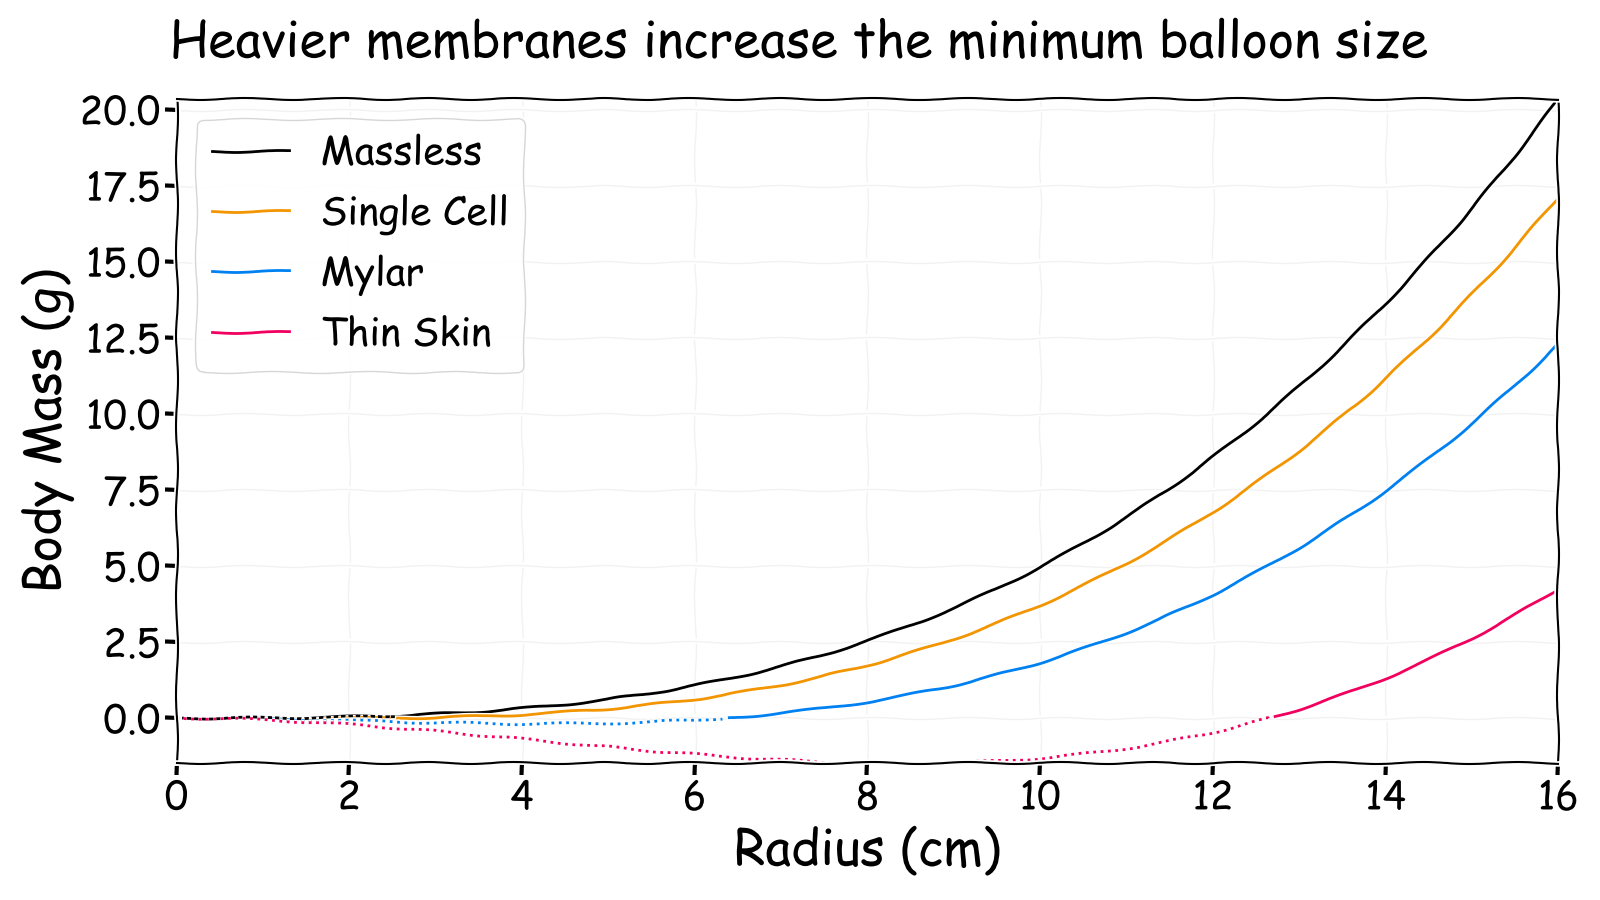 Neutrally buoyant body mass versus radius for different membranes